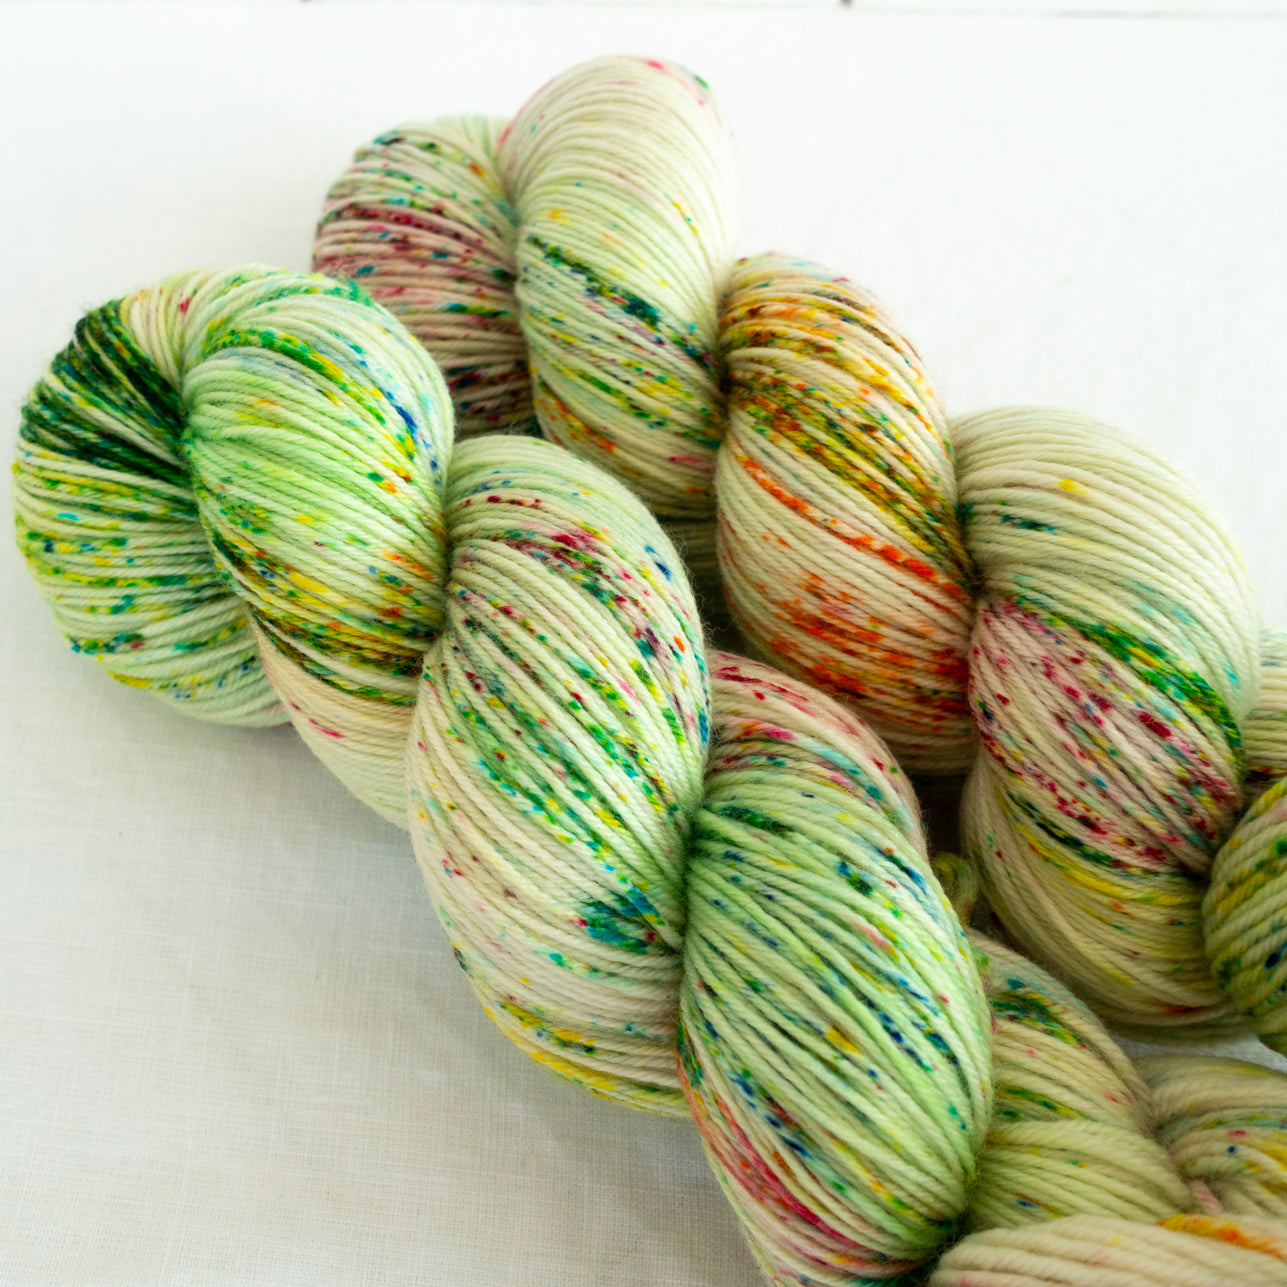 Skip Rope Yarn Co hand dyed sock yarn - two skeins of light green yarn with speckles of green, yellow and pink